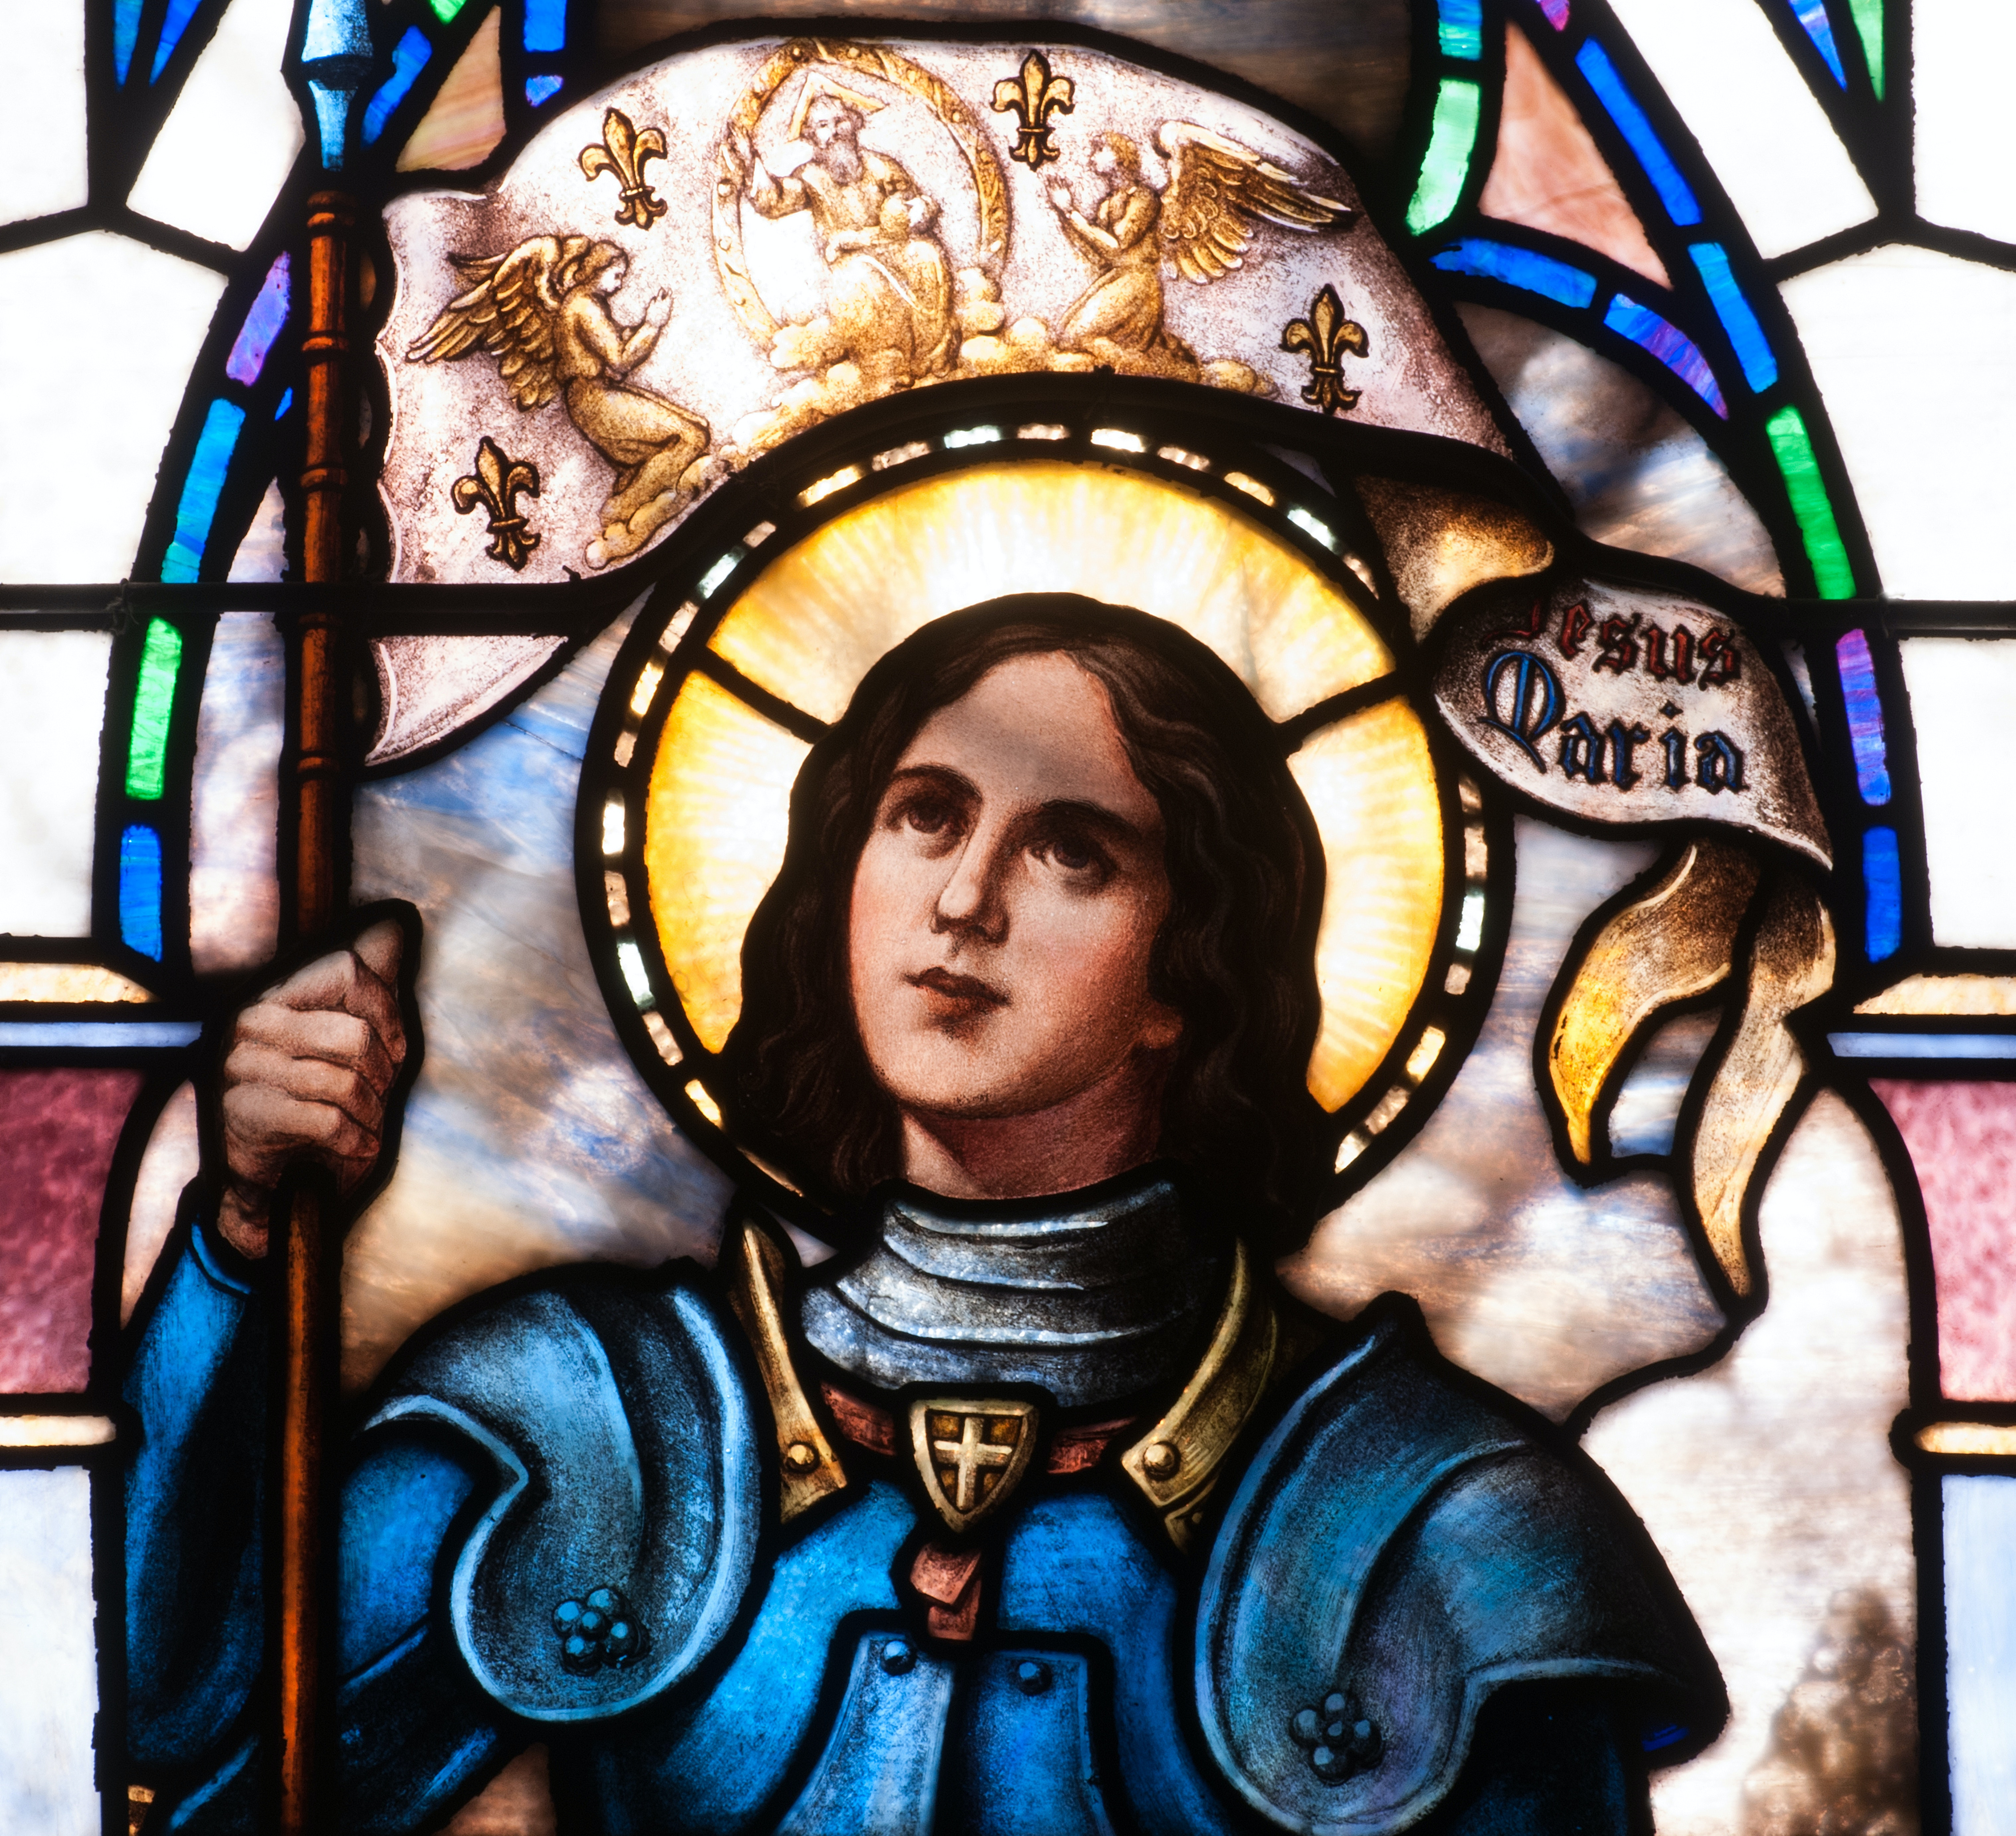 essay on st. joan of arc Joan of arc: god's messenger as to whether victory was my banners or mine, it was all our lord's, joan of arc, 1431 joan of arc , also known as the maid of orleans, was a ferocious figure in history.